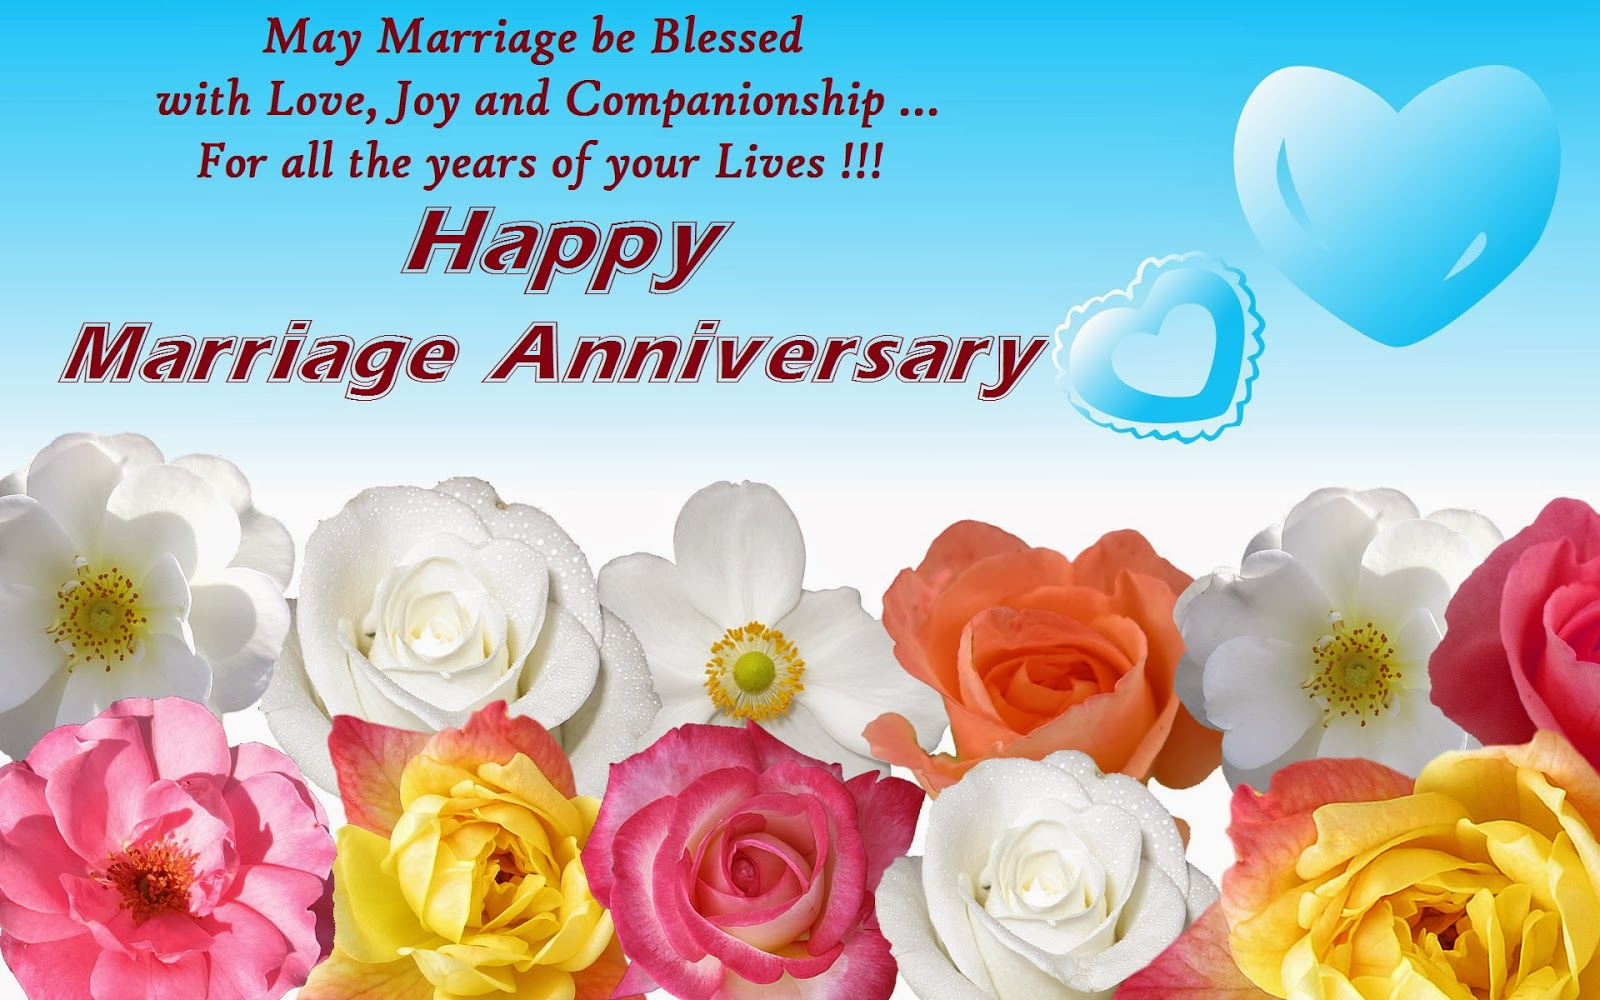 Best happy wedding anniversary wishes images cards greetings photos best happy wedding anniversary wishes cards for husband wife m4hsunfo